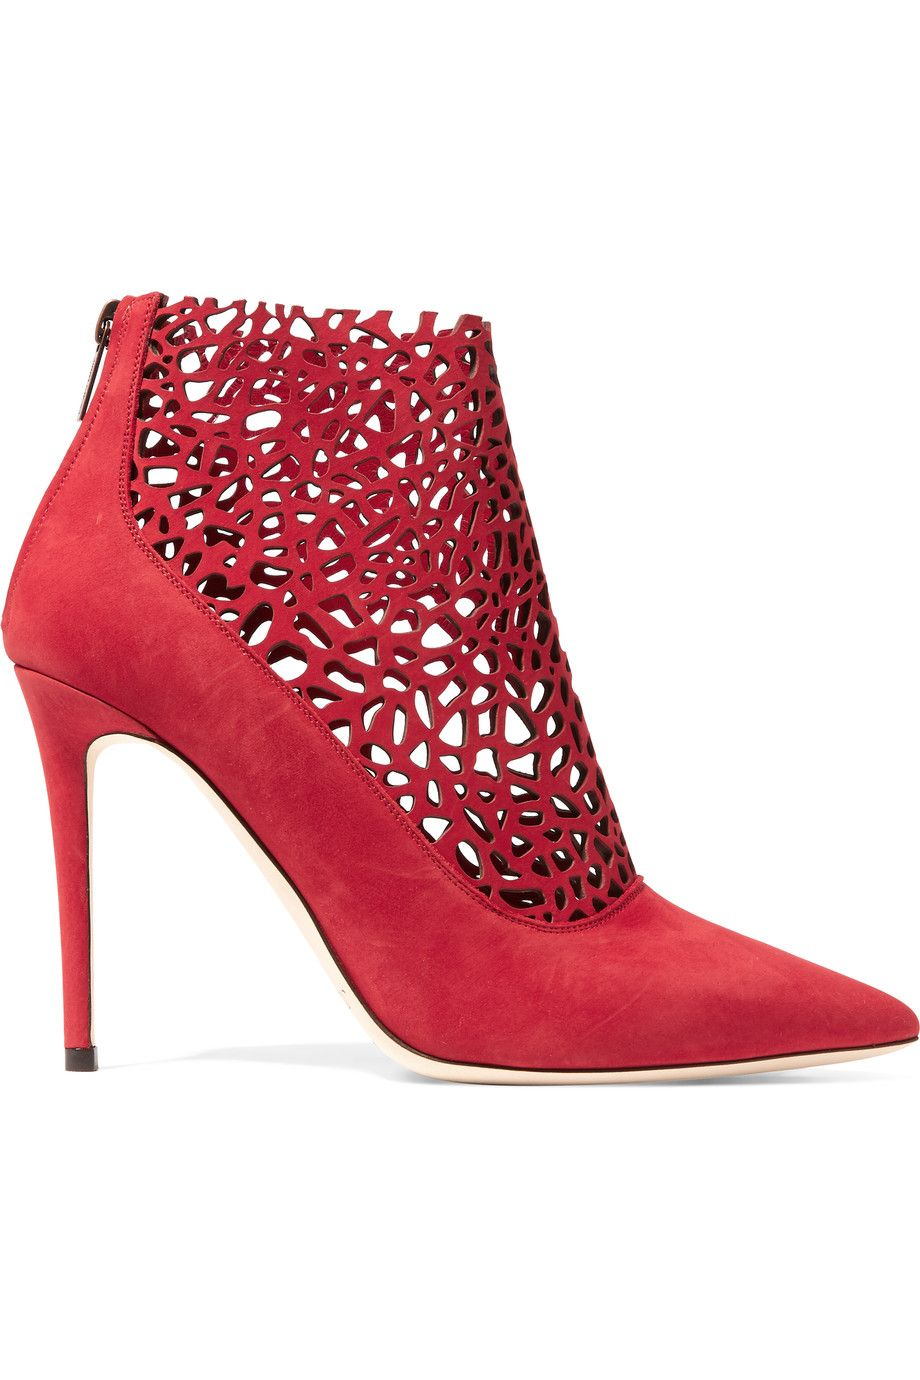 f1663dc8d1f6 Shop on-sale Jimmy Choo Maurice laser-cut suede boots. Browse other  discount designer Boots   more on The Most Fashionable Fashion Outlet